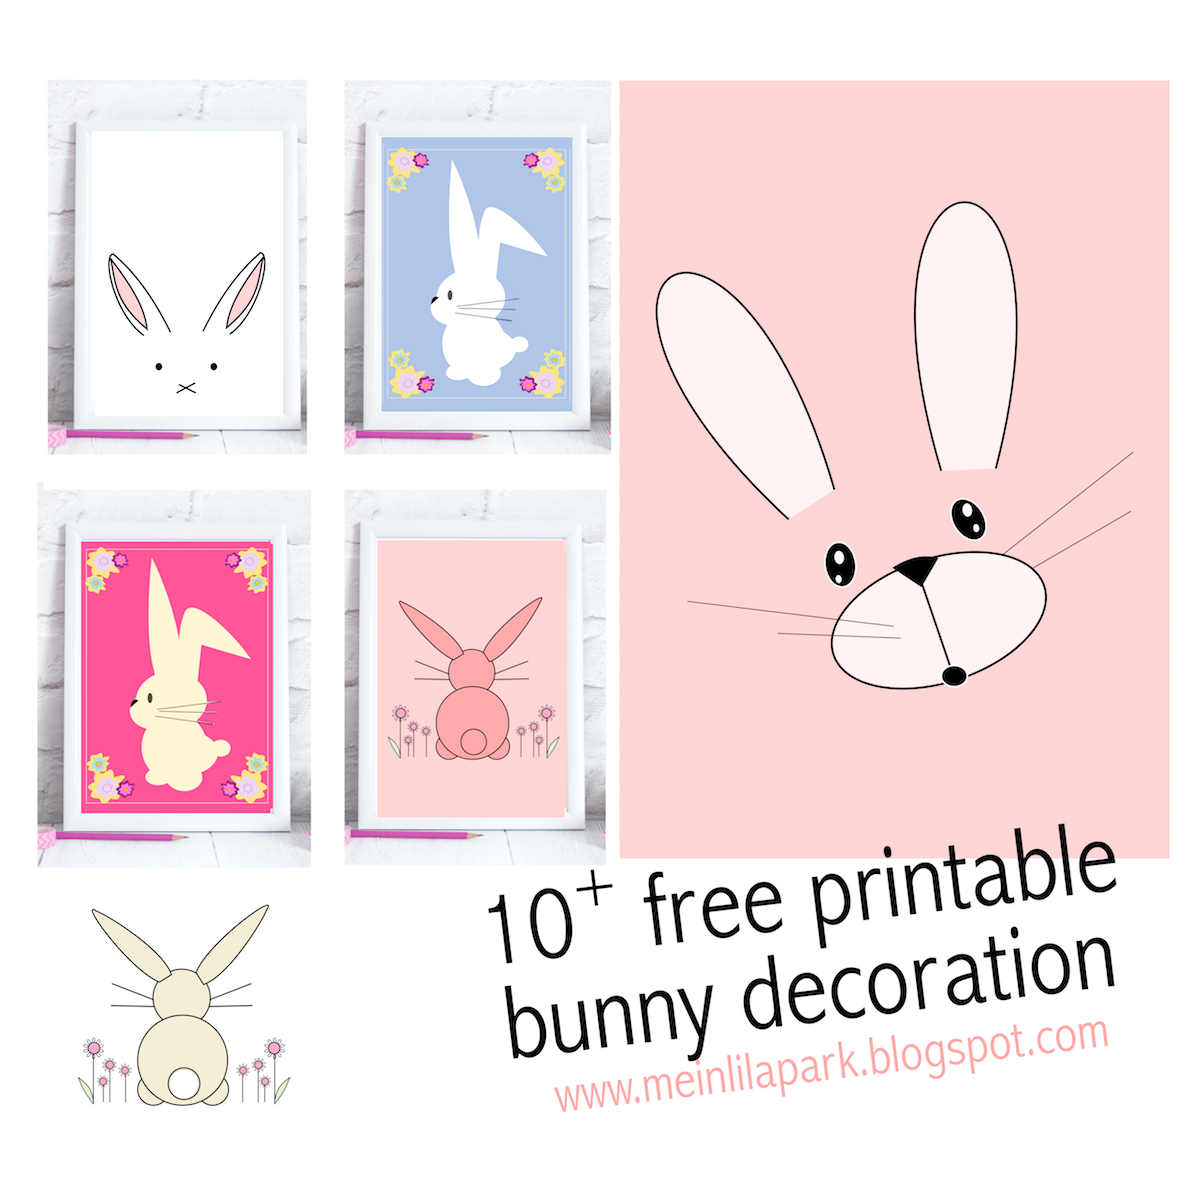 Free Printable Bunny Nursery Decoration - Round Up | Meinlilapark - Free Printable Bunny Pictures